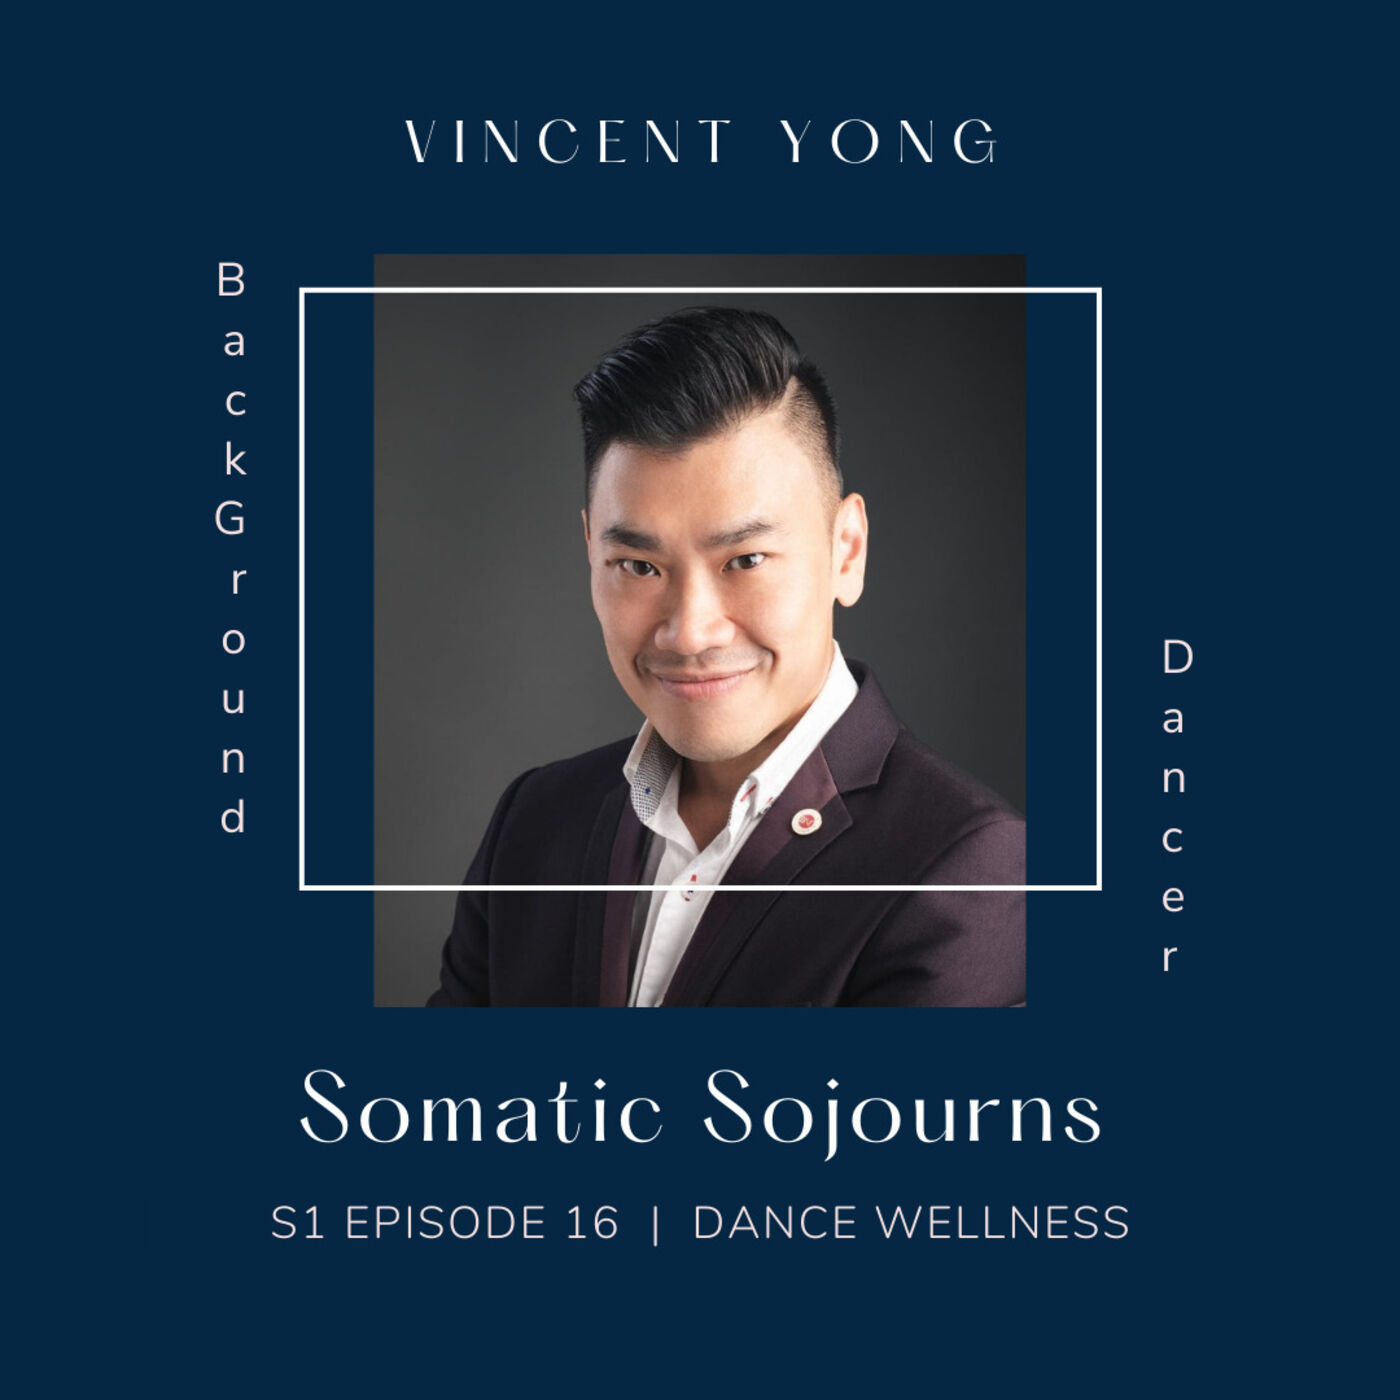 Somatic Sojourns   Vincent Yong